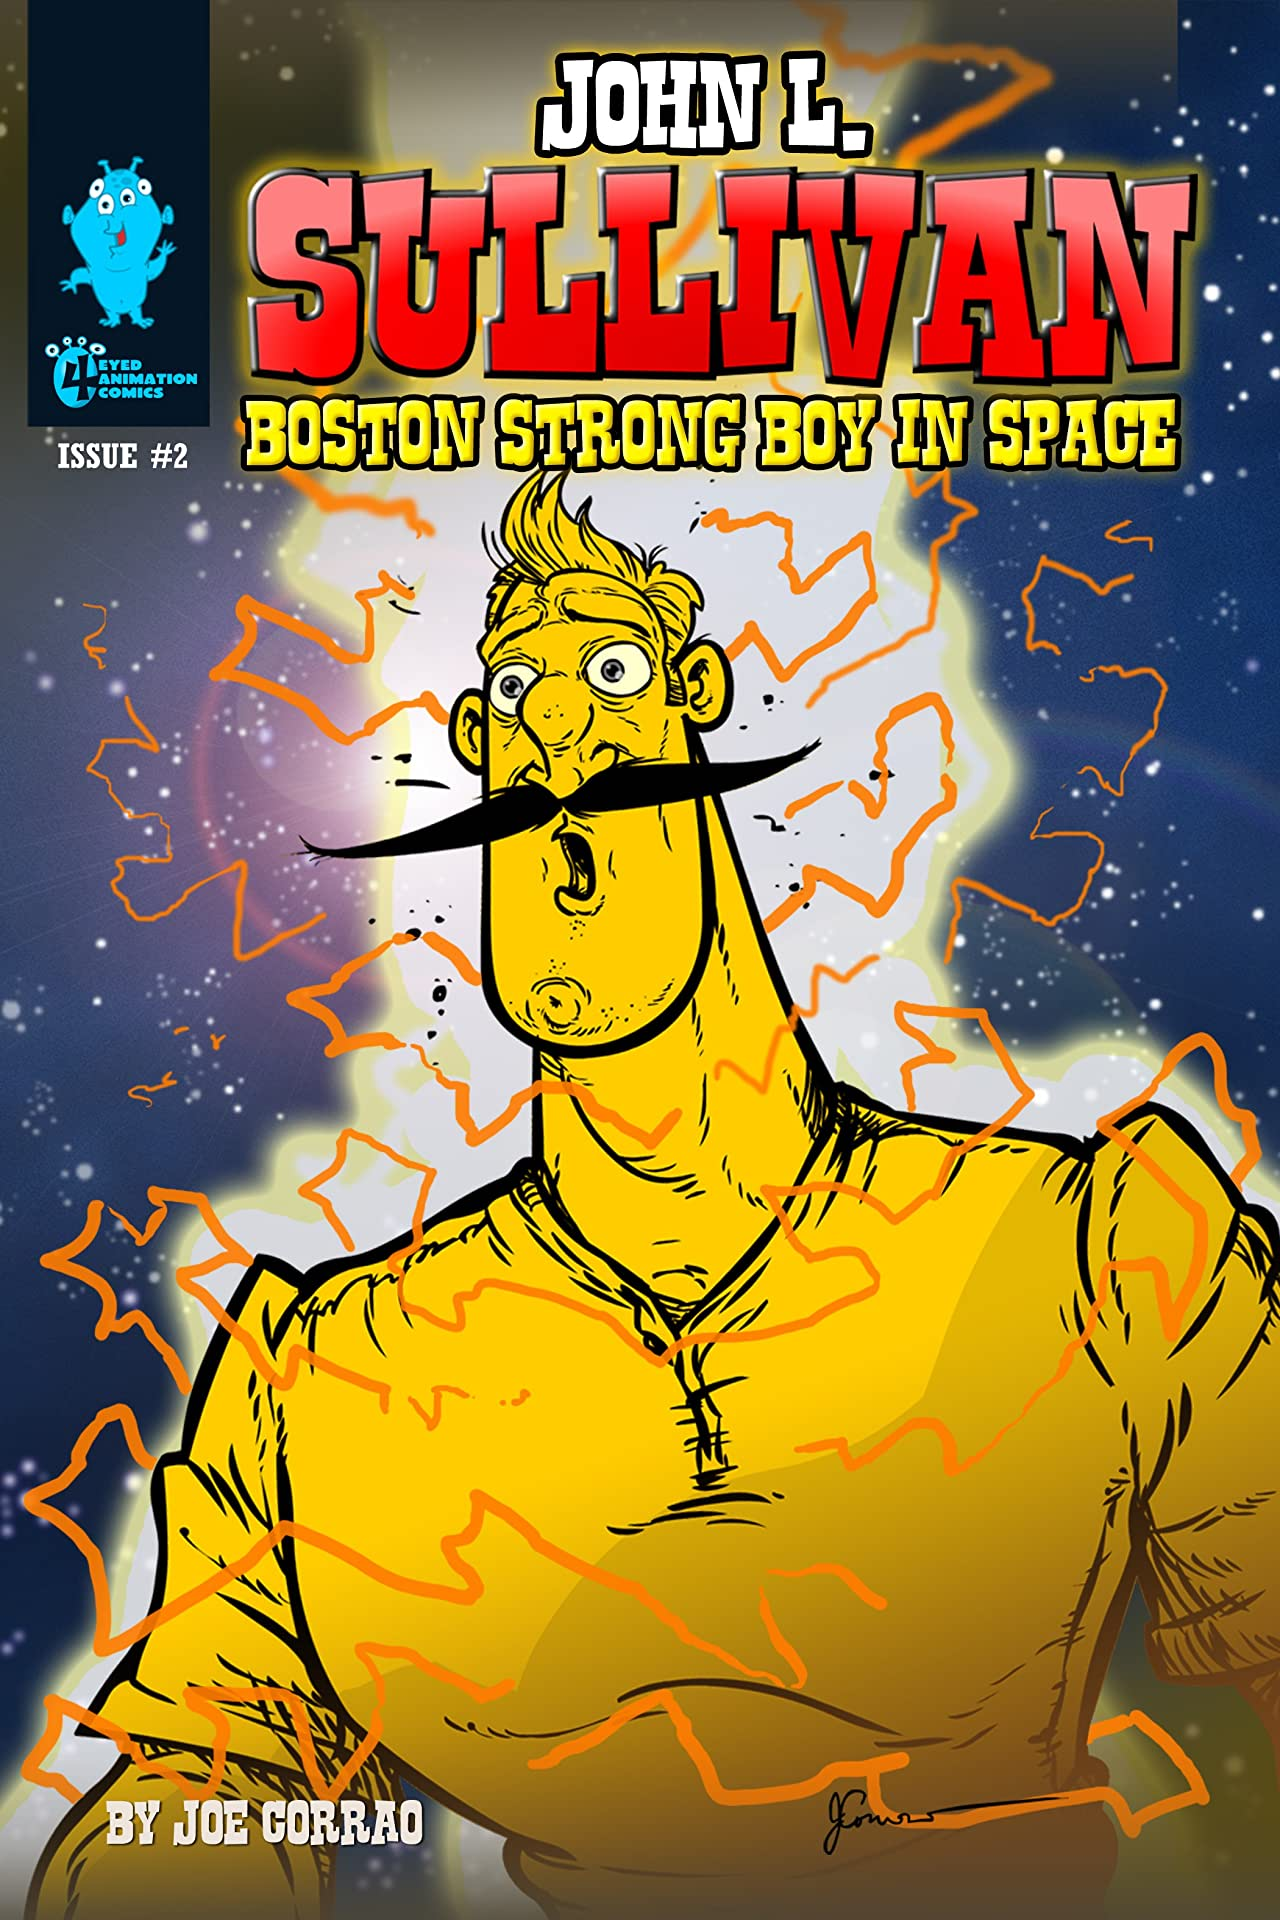 John L. Sullivan Boston Strong Boy In Space #2